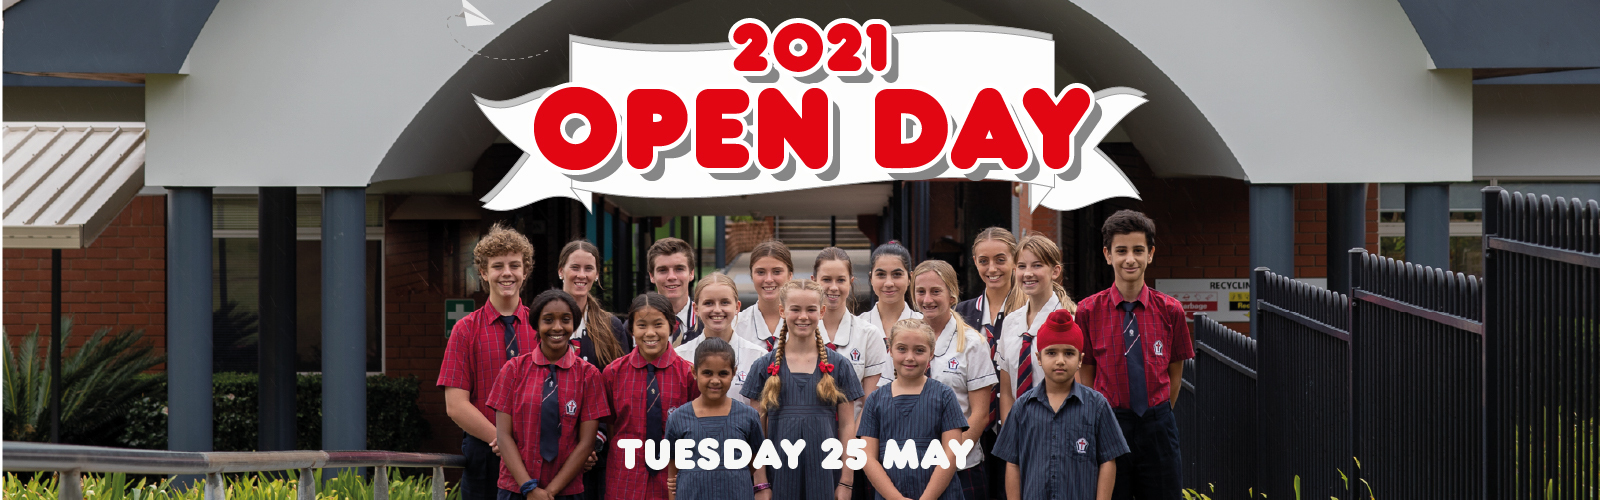 OpenDay2021.jpg?mtime=20210329102515#asset:8437